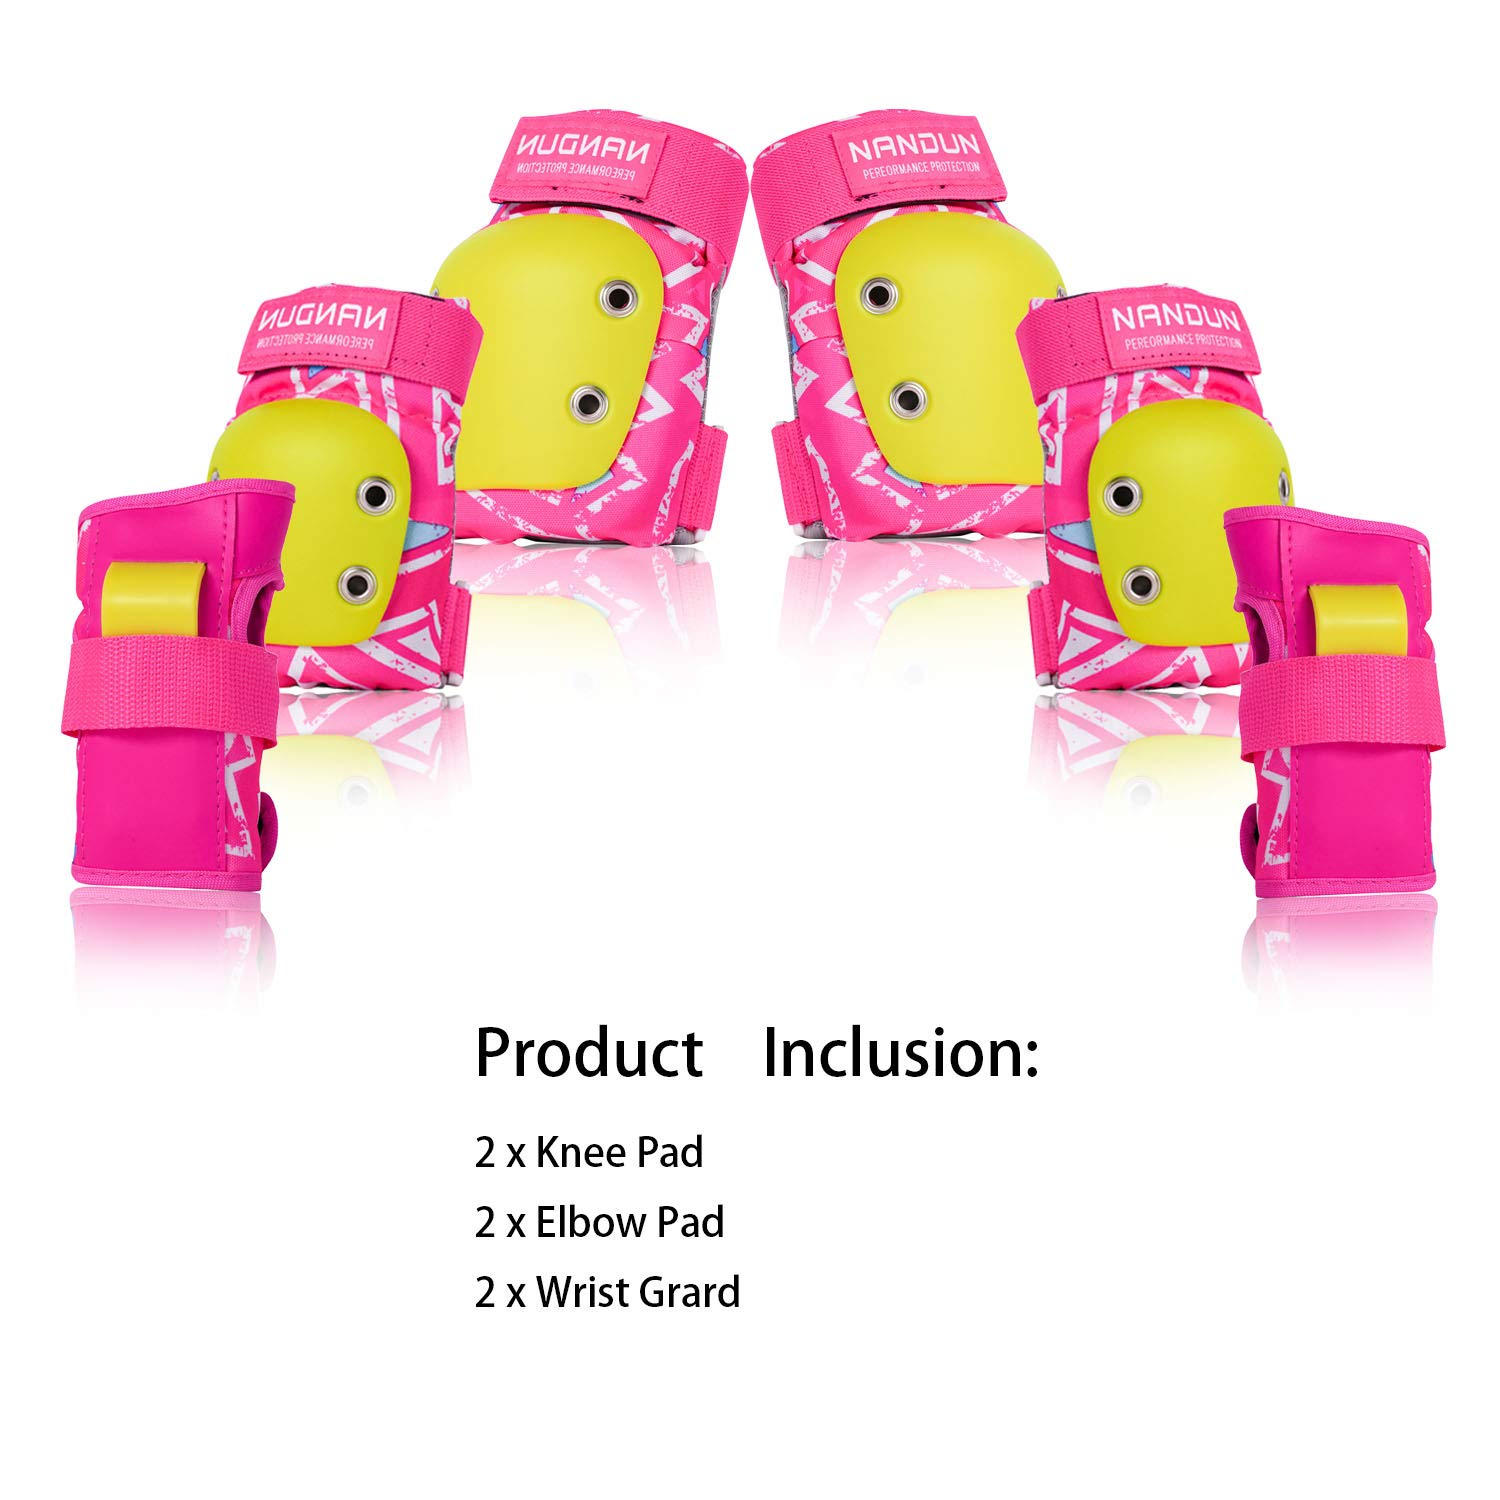 Knee-Pads Elbow-Pads Wrist-Guards for Kids Boys//girls//youth 6 in 1 Protective Gear Set for Multi Sports Skateboarding Roller Skating Inline Skate Cycling Biking BMX Bicycle Scootering(Upgraded 2.0 Pink S)